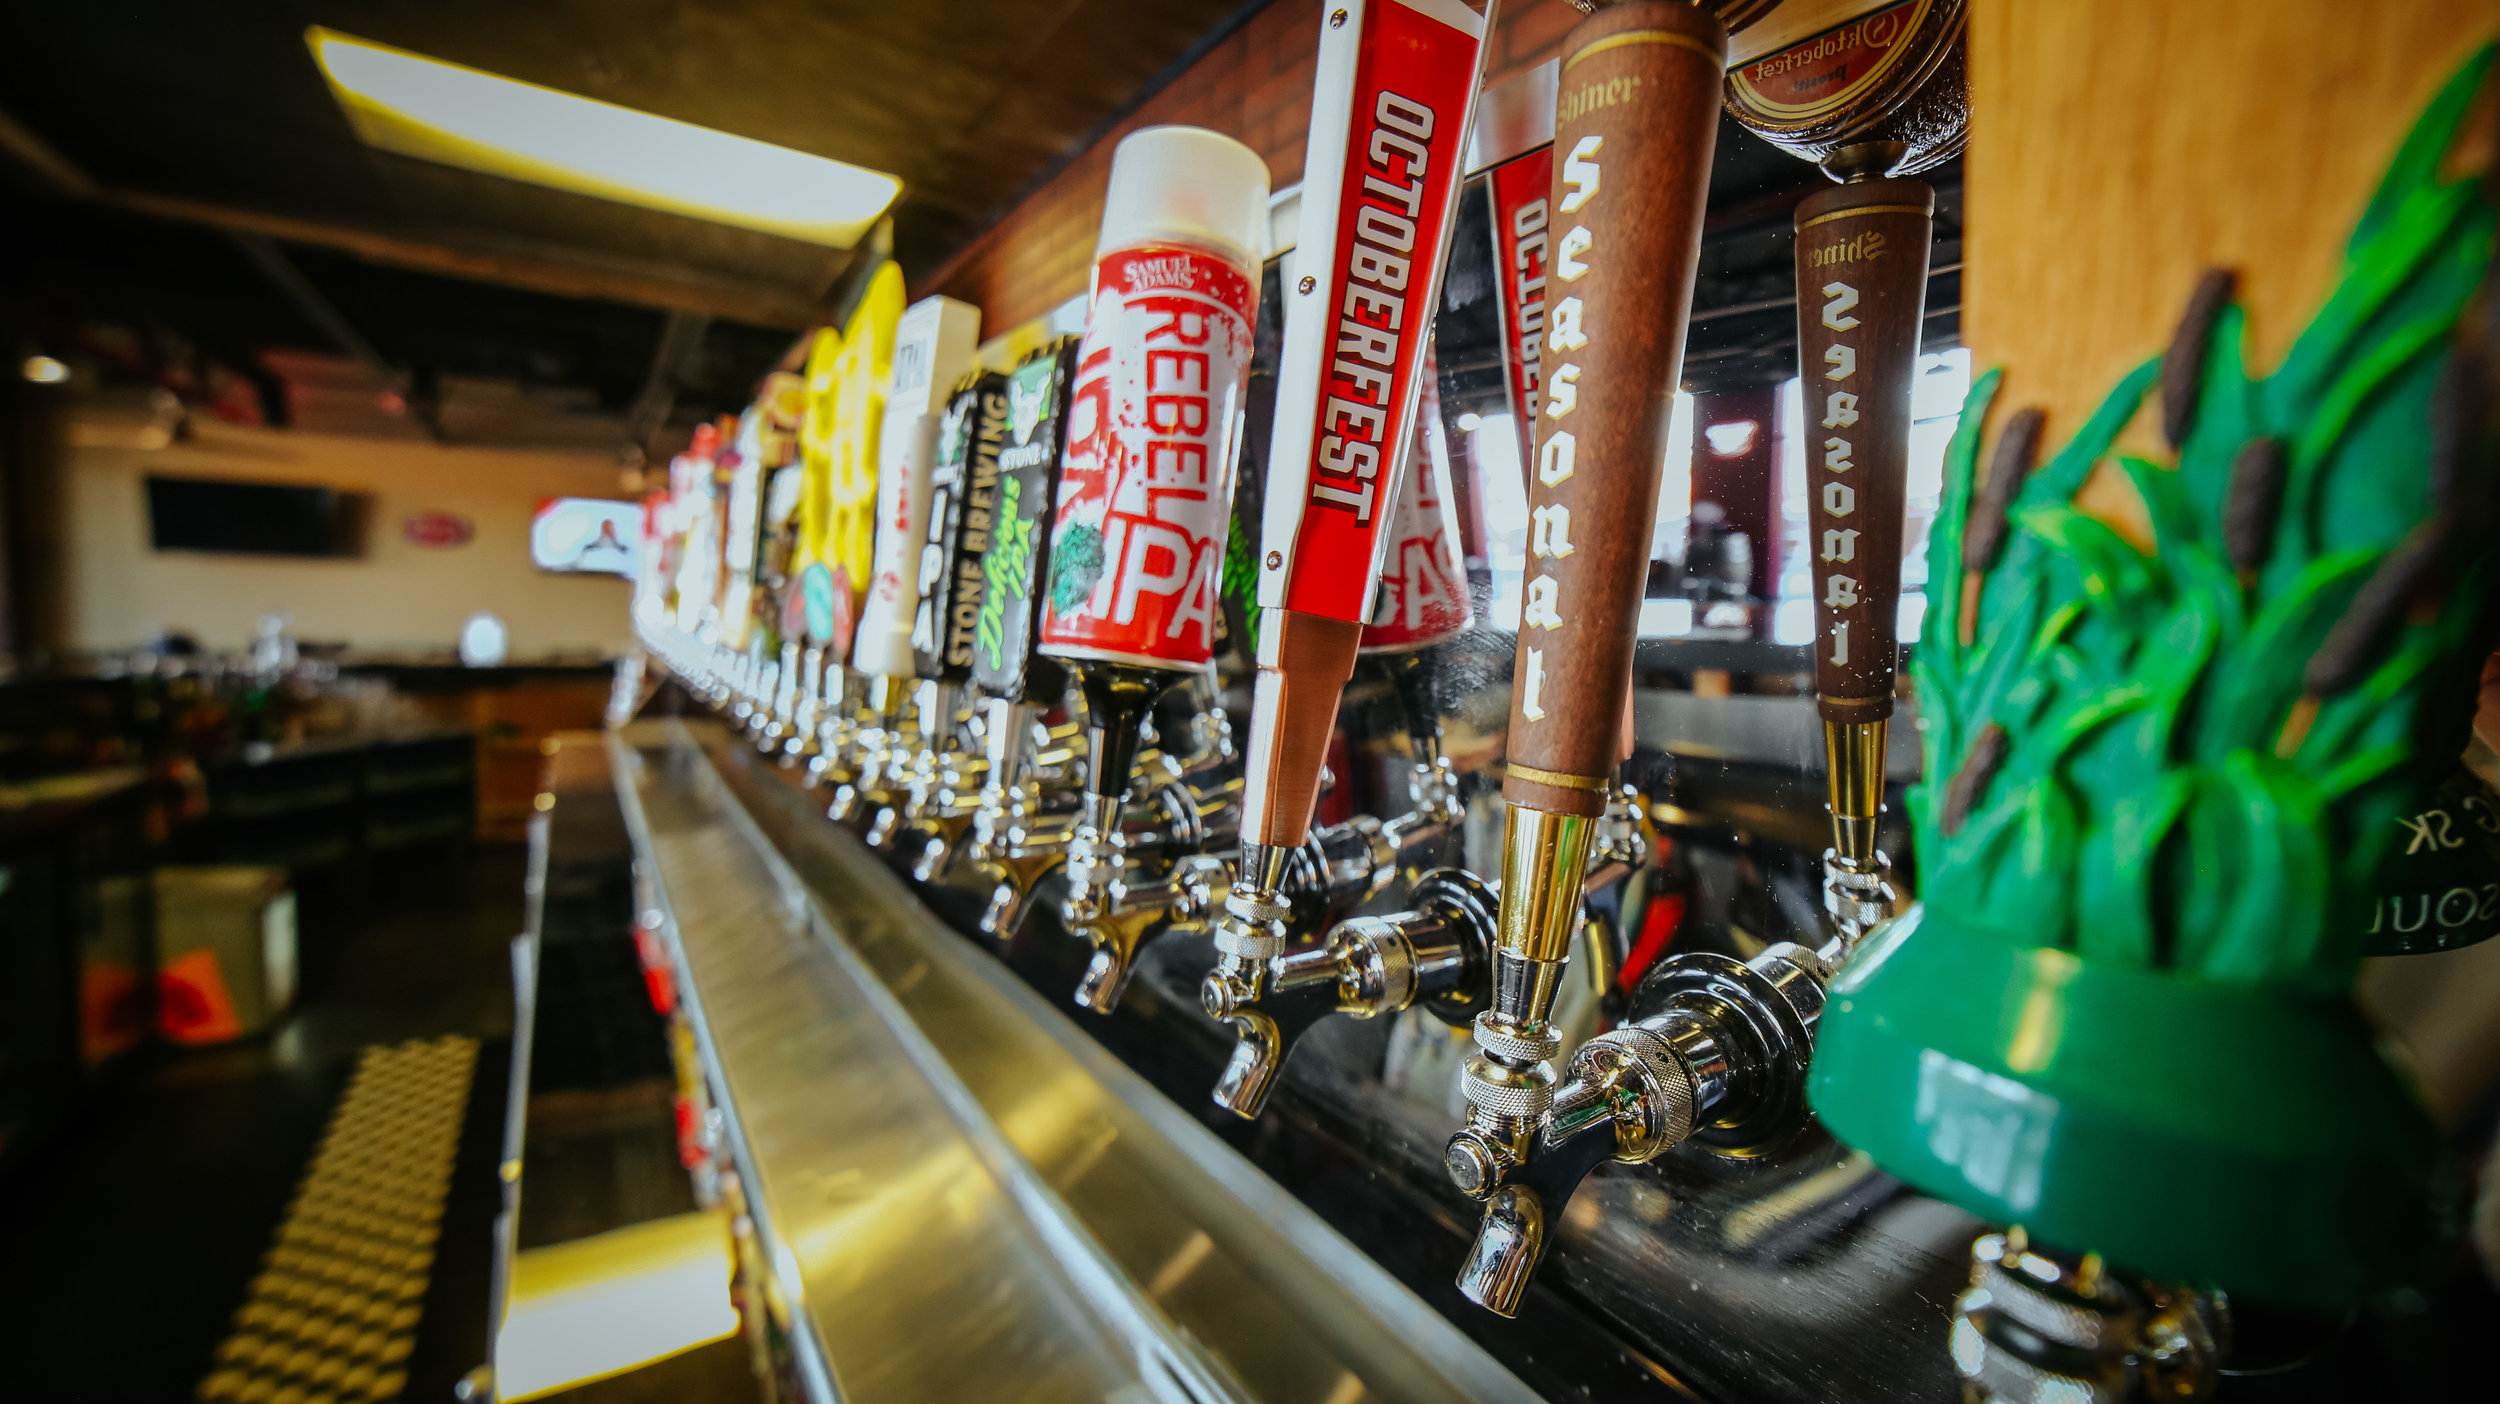 Experience the Best - Jojos has been voted as the best bar in the Greater Mustang-Yukon Area every year since we opened. We invite you to come enjoy a beer and a delicious burger!